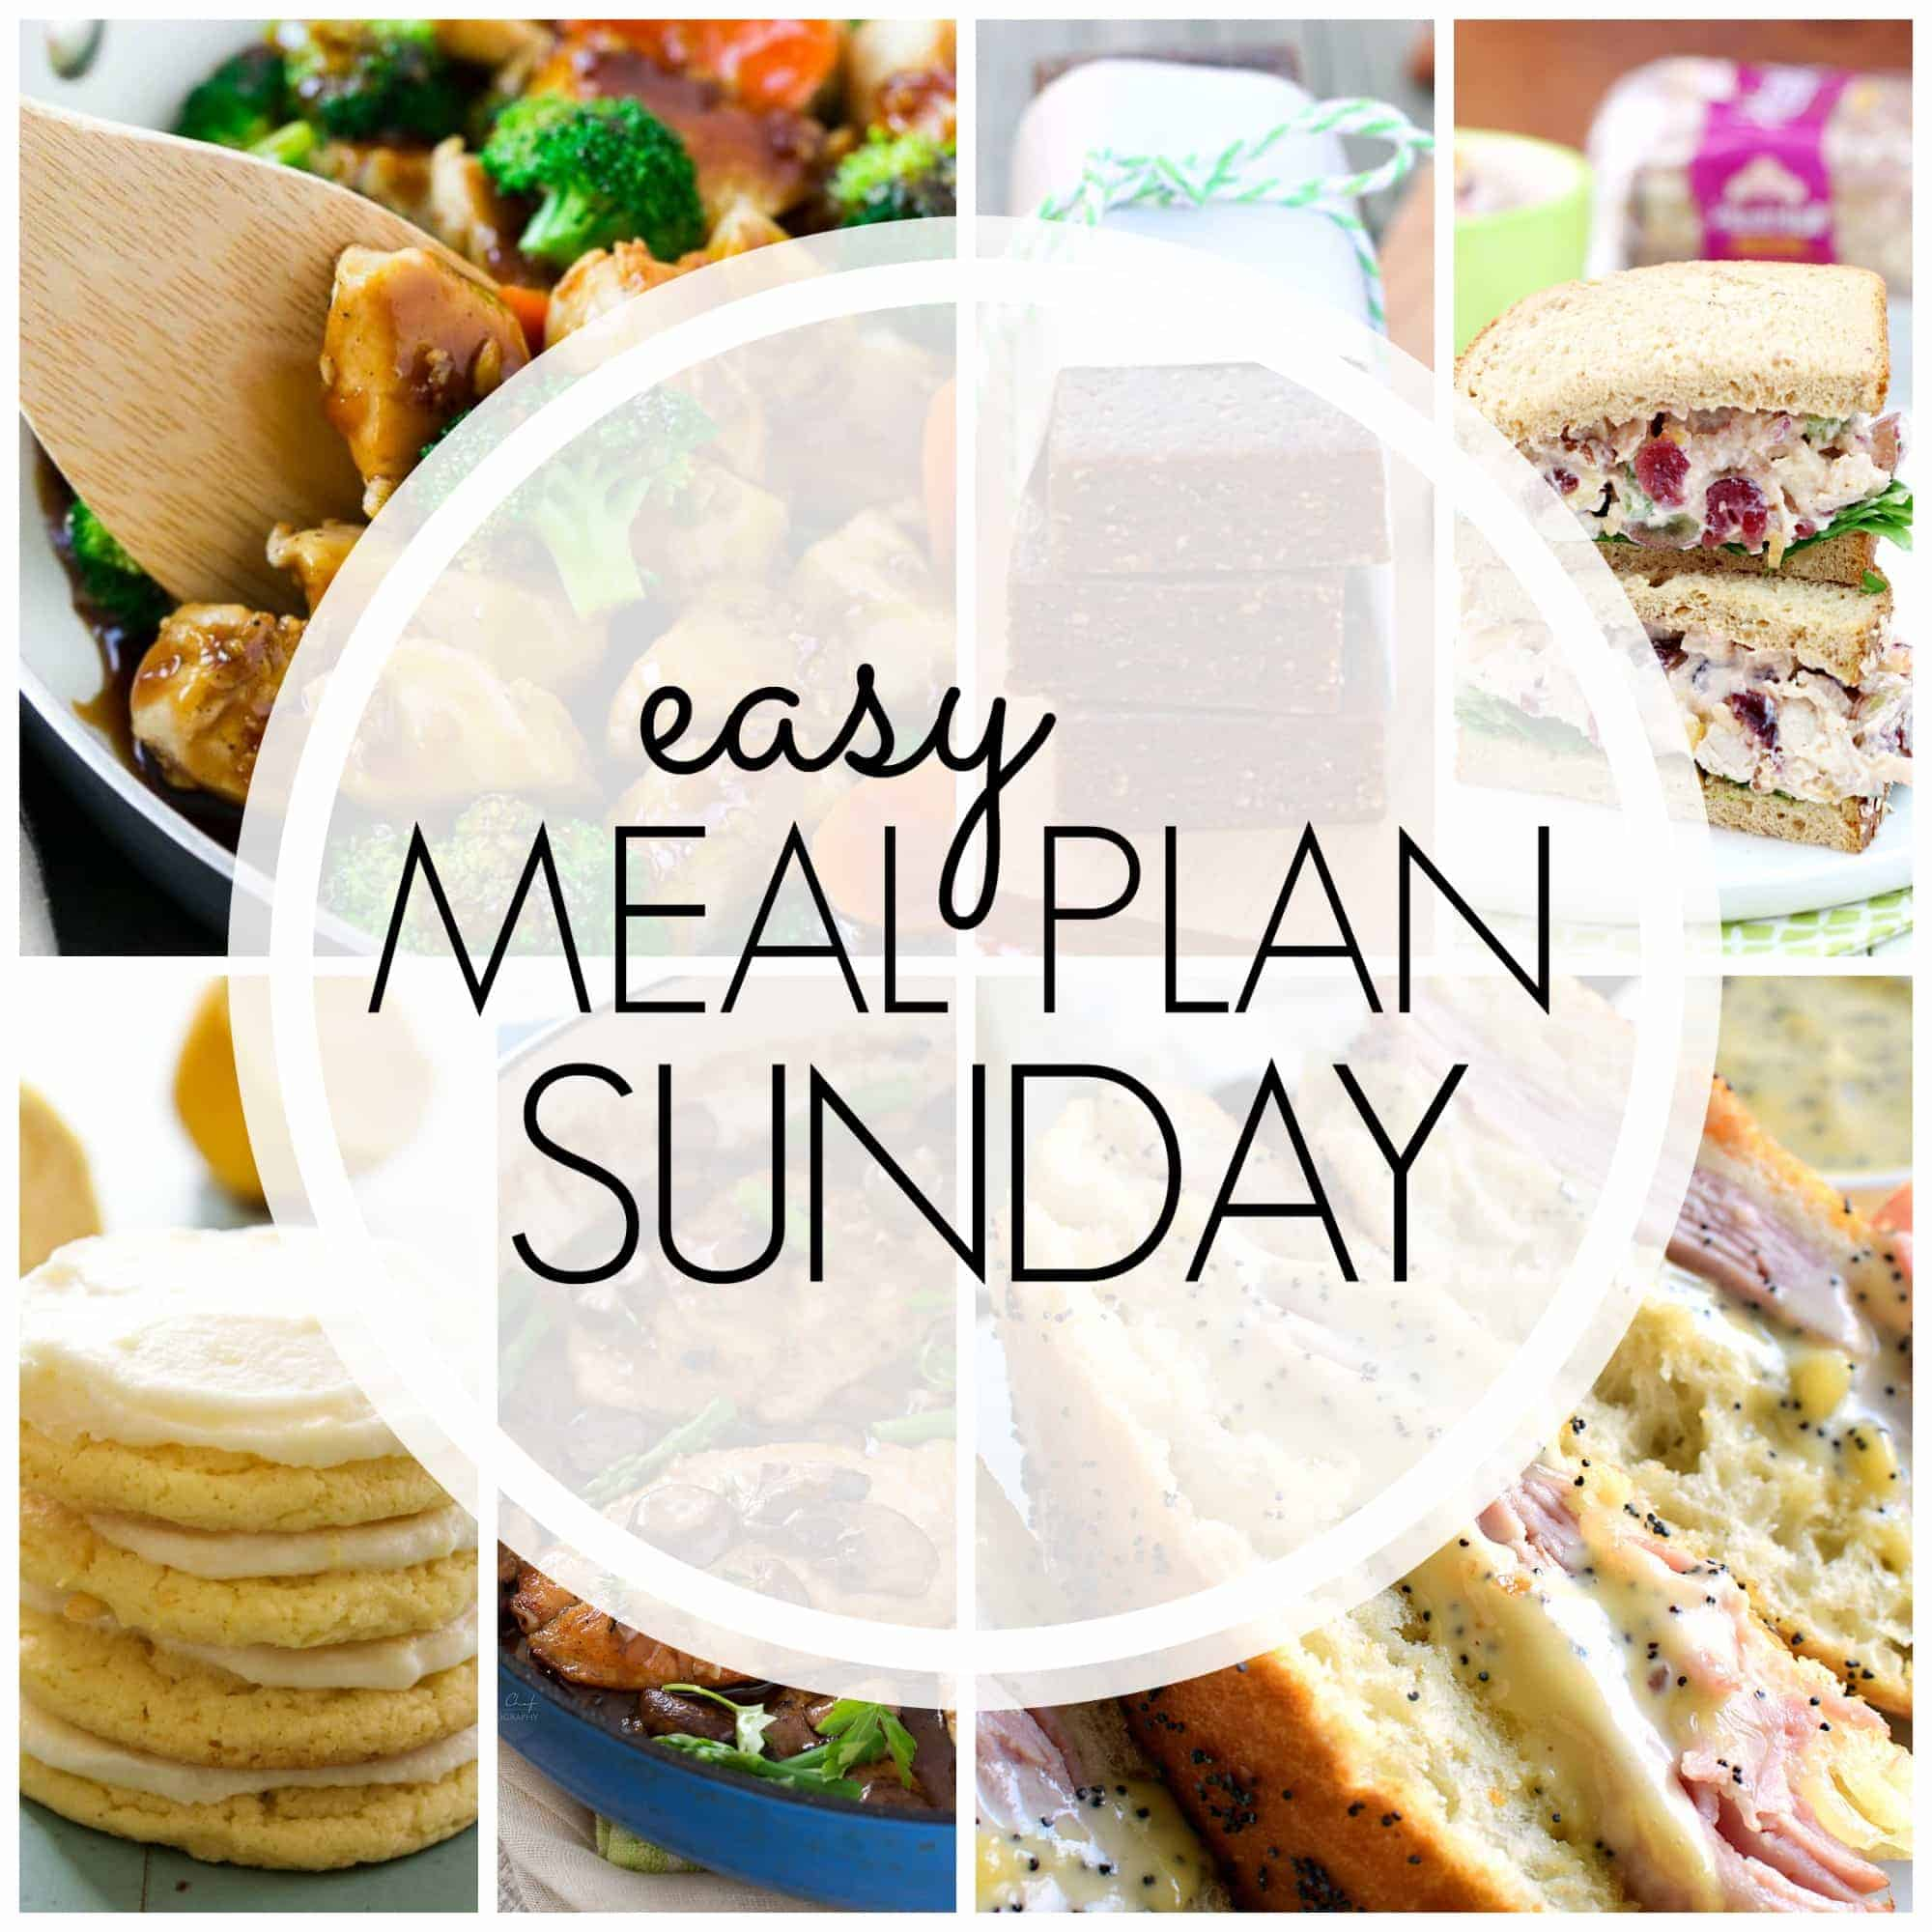 With Easy Meal Plan Sunday Week 91 - six dinners, two desserts, a breakfast and a healthy menu option will help get the week's meal planning done quickly!